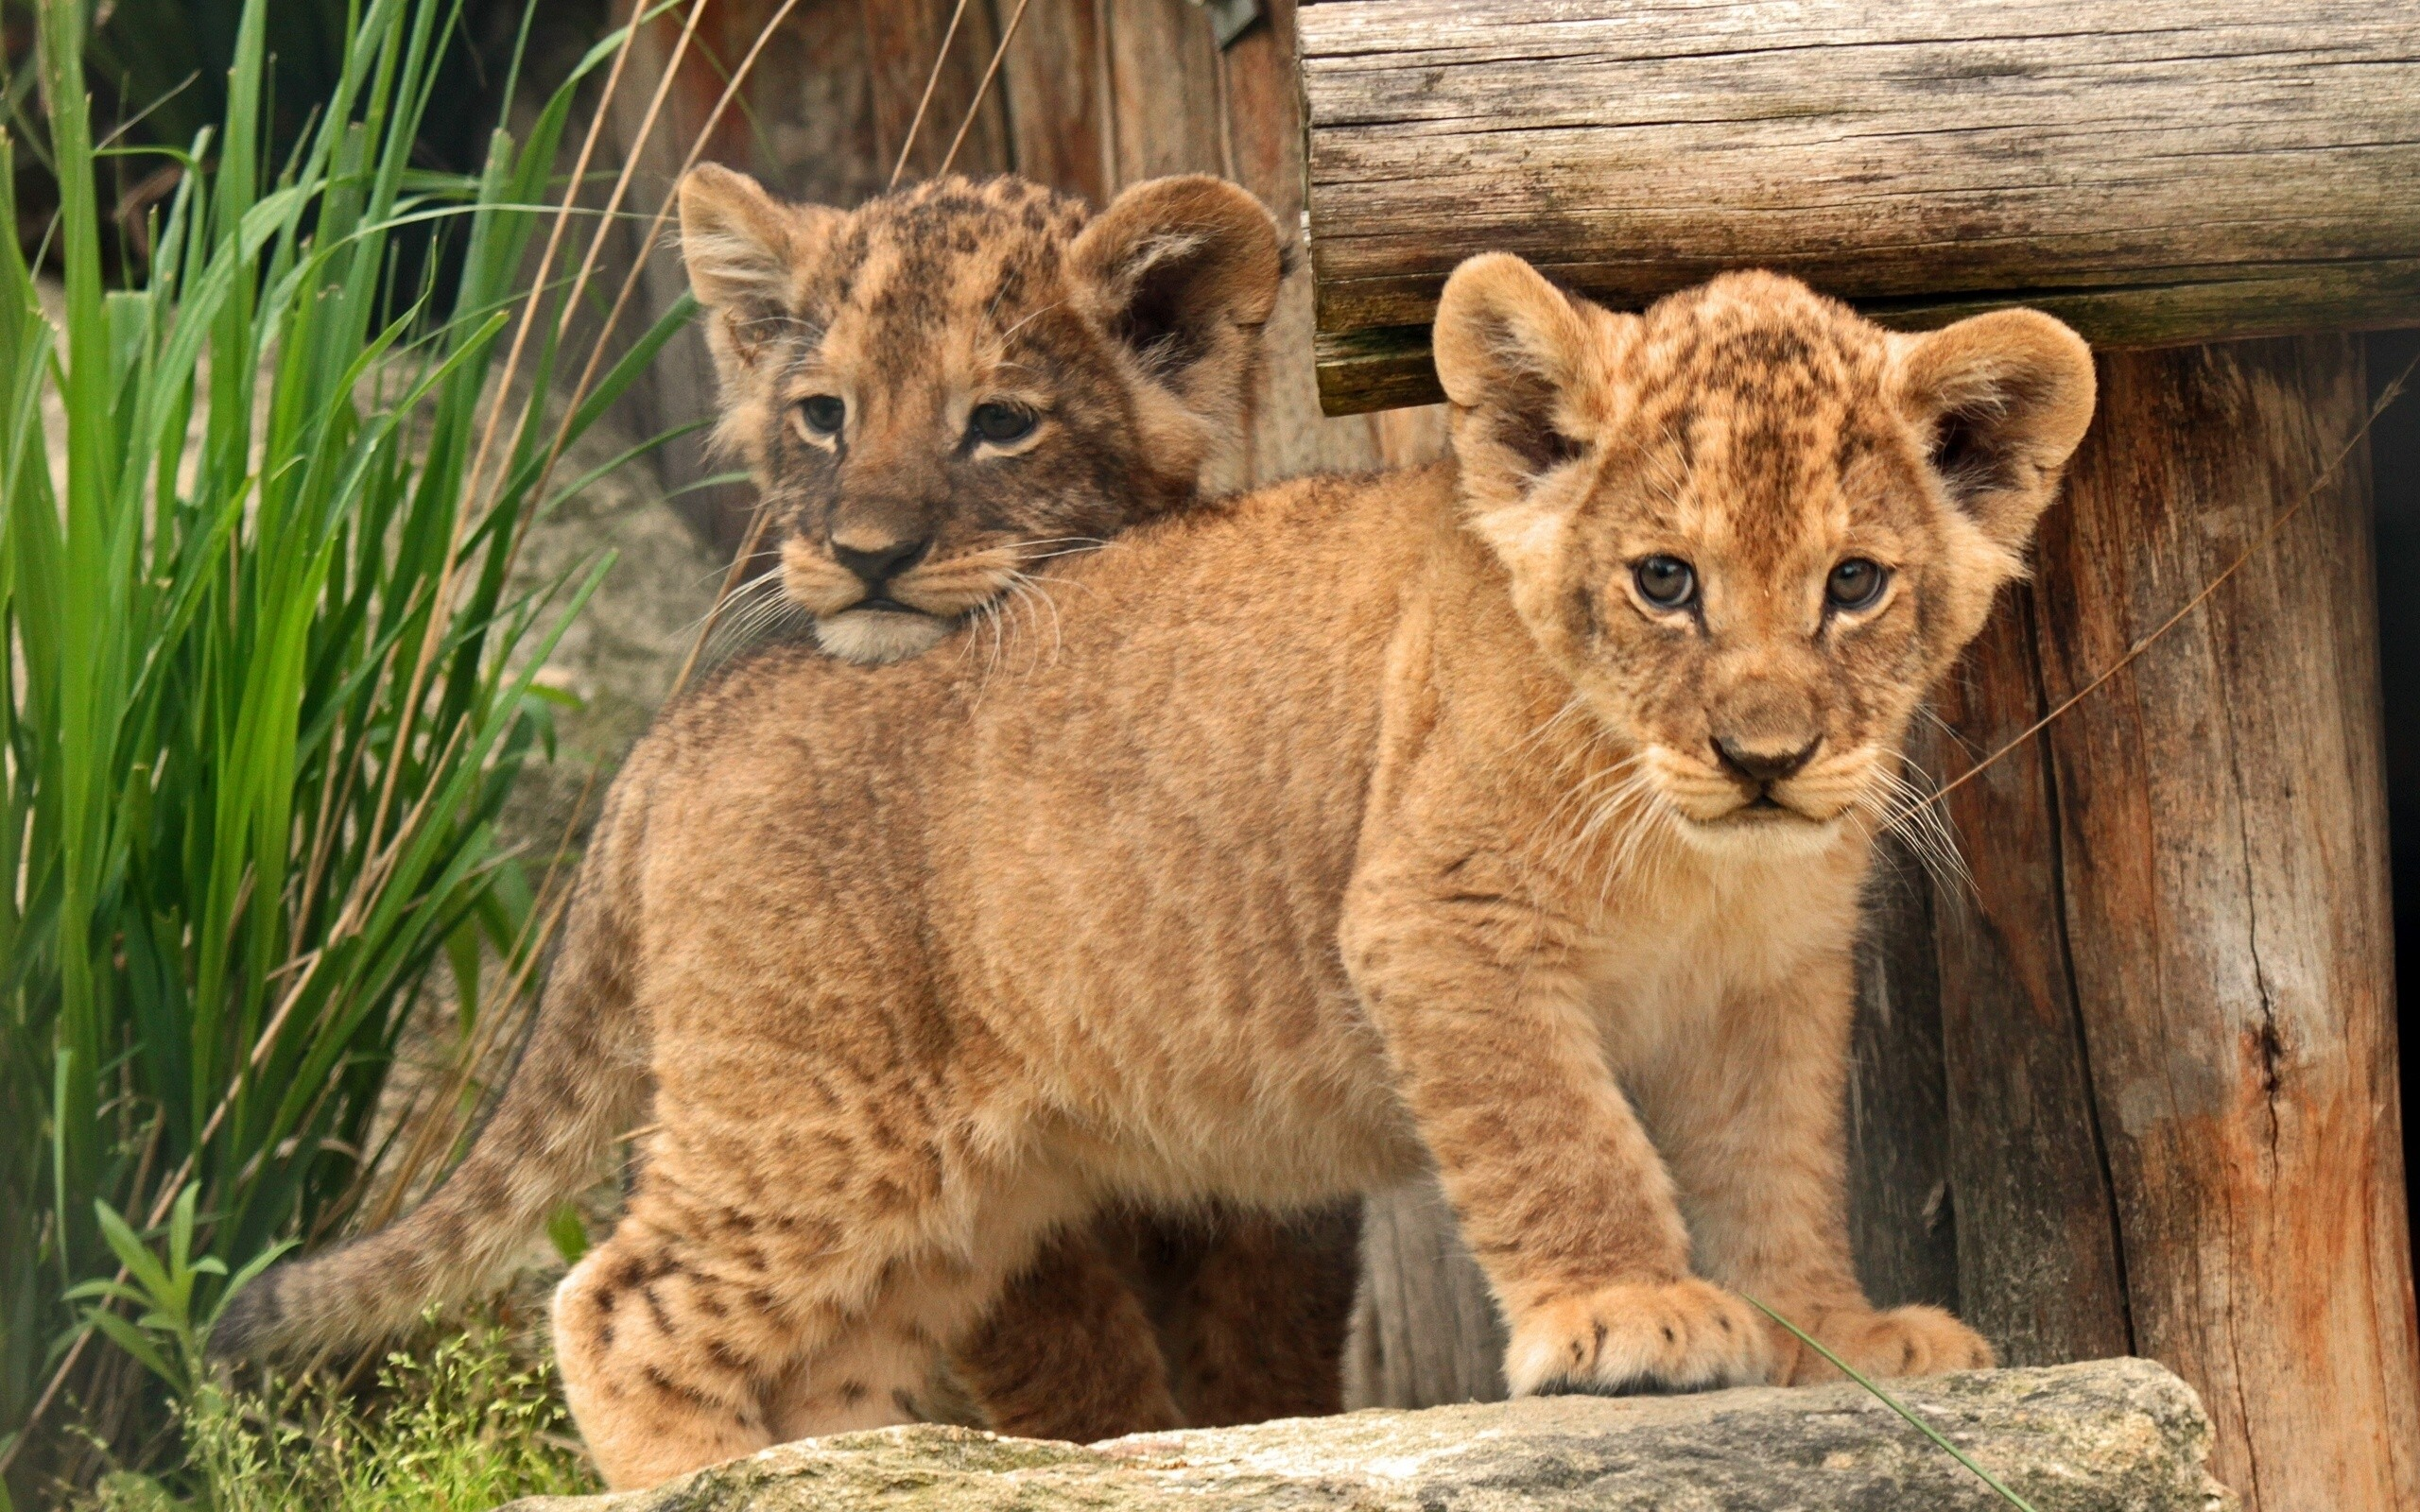 Cute Lion Cubs Hd Wallpapers Fond D 233 Cran Lionceau B 233 B 233 Des Gamins Lion 2560x1600